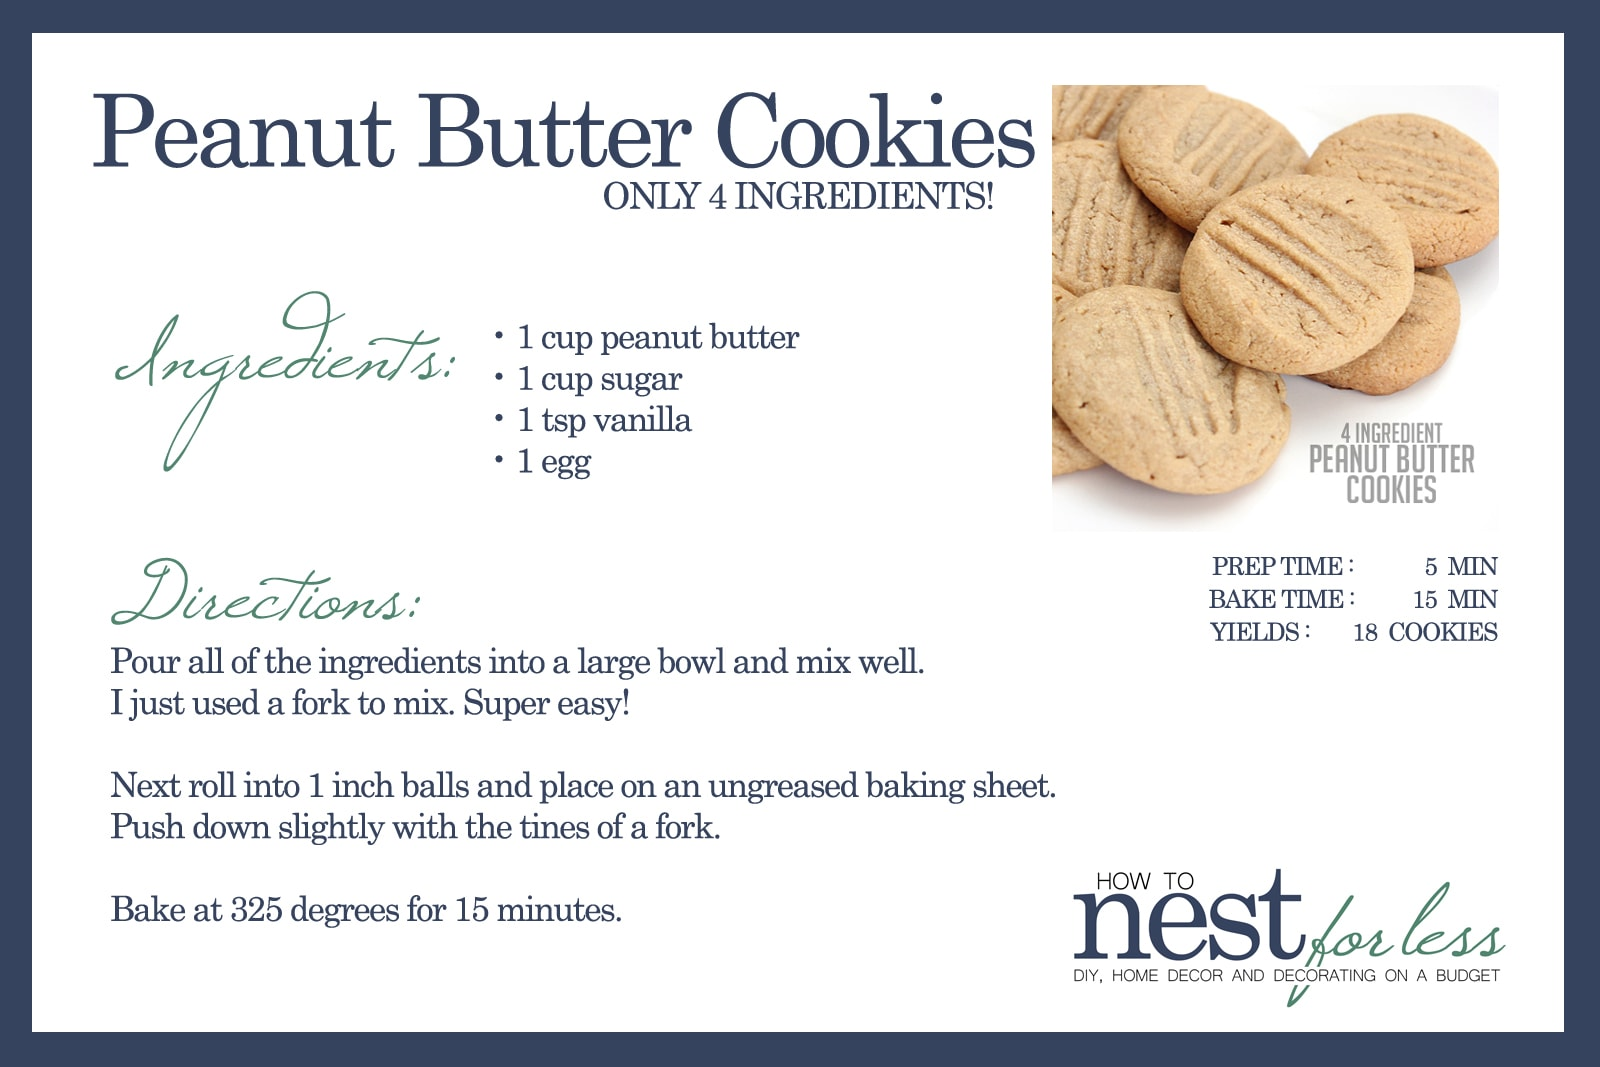 peanut-butter-cookies-recipe-card